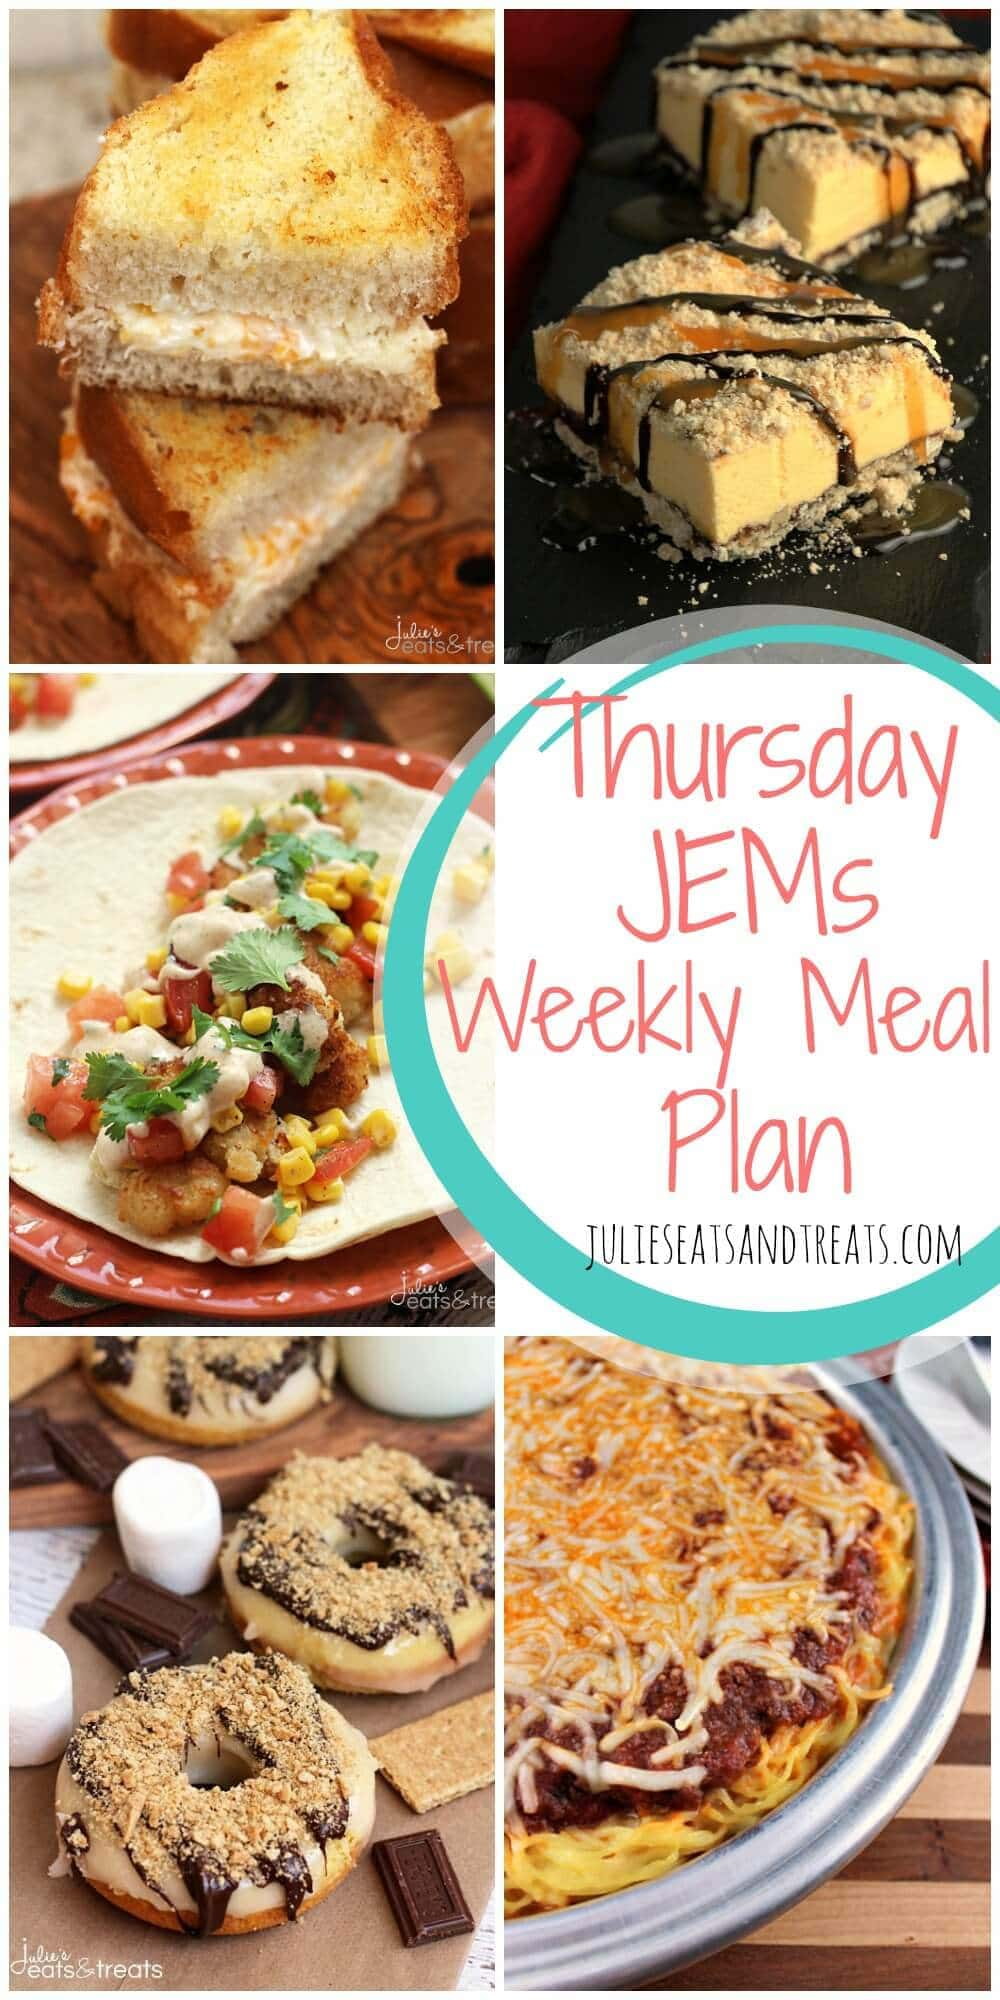 Julie's Easy Meal Plans ~ Simple every day meals for the busy family! Quick, Easy and Delicious Meals!